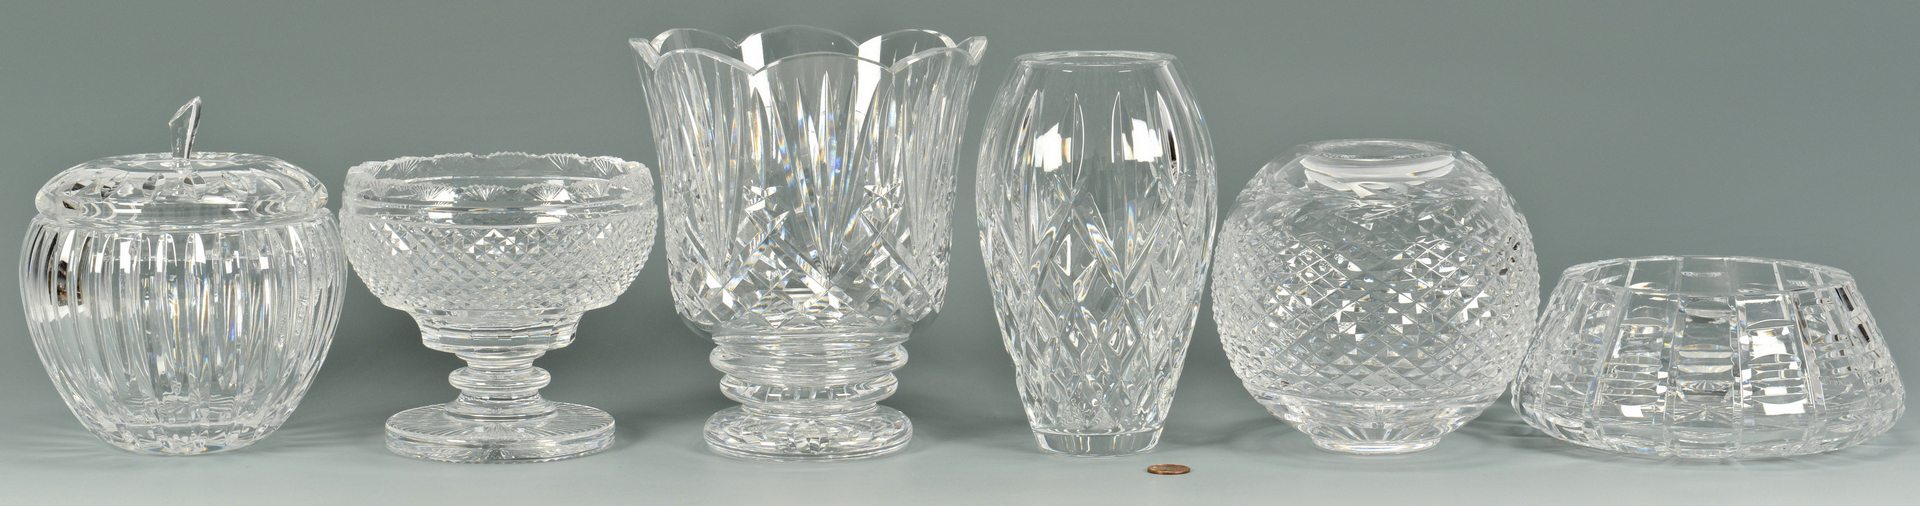 Lot 3088189: Grouping of Waterford Crystal Decorative Items